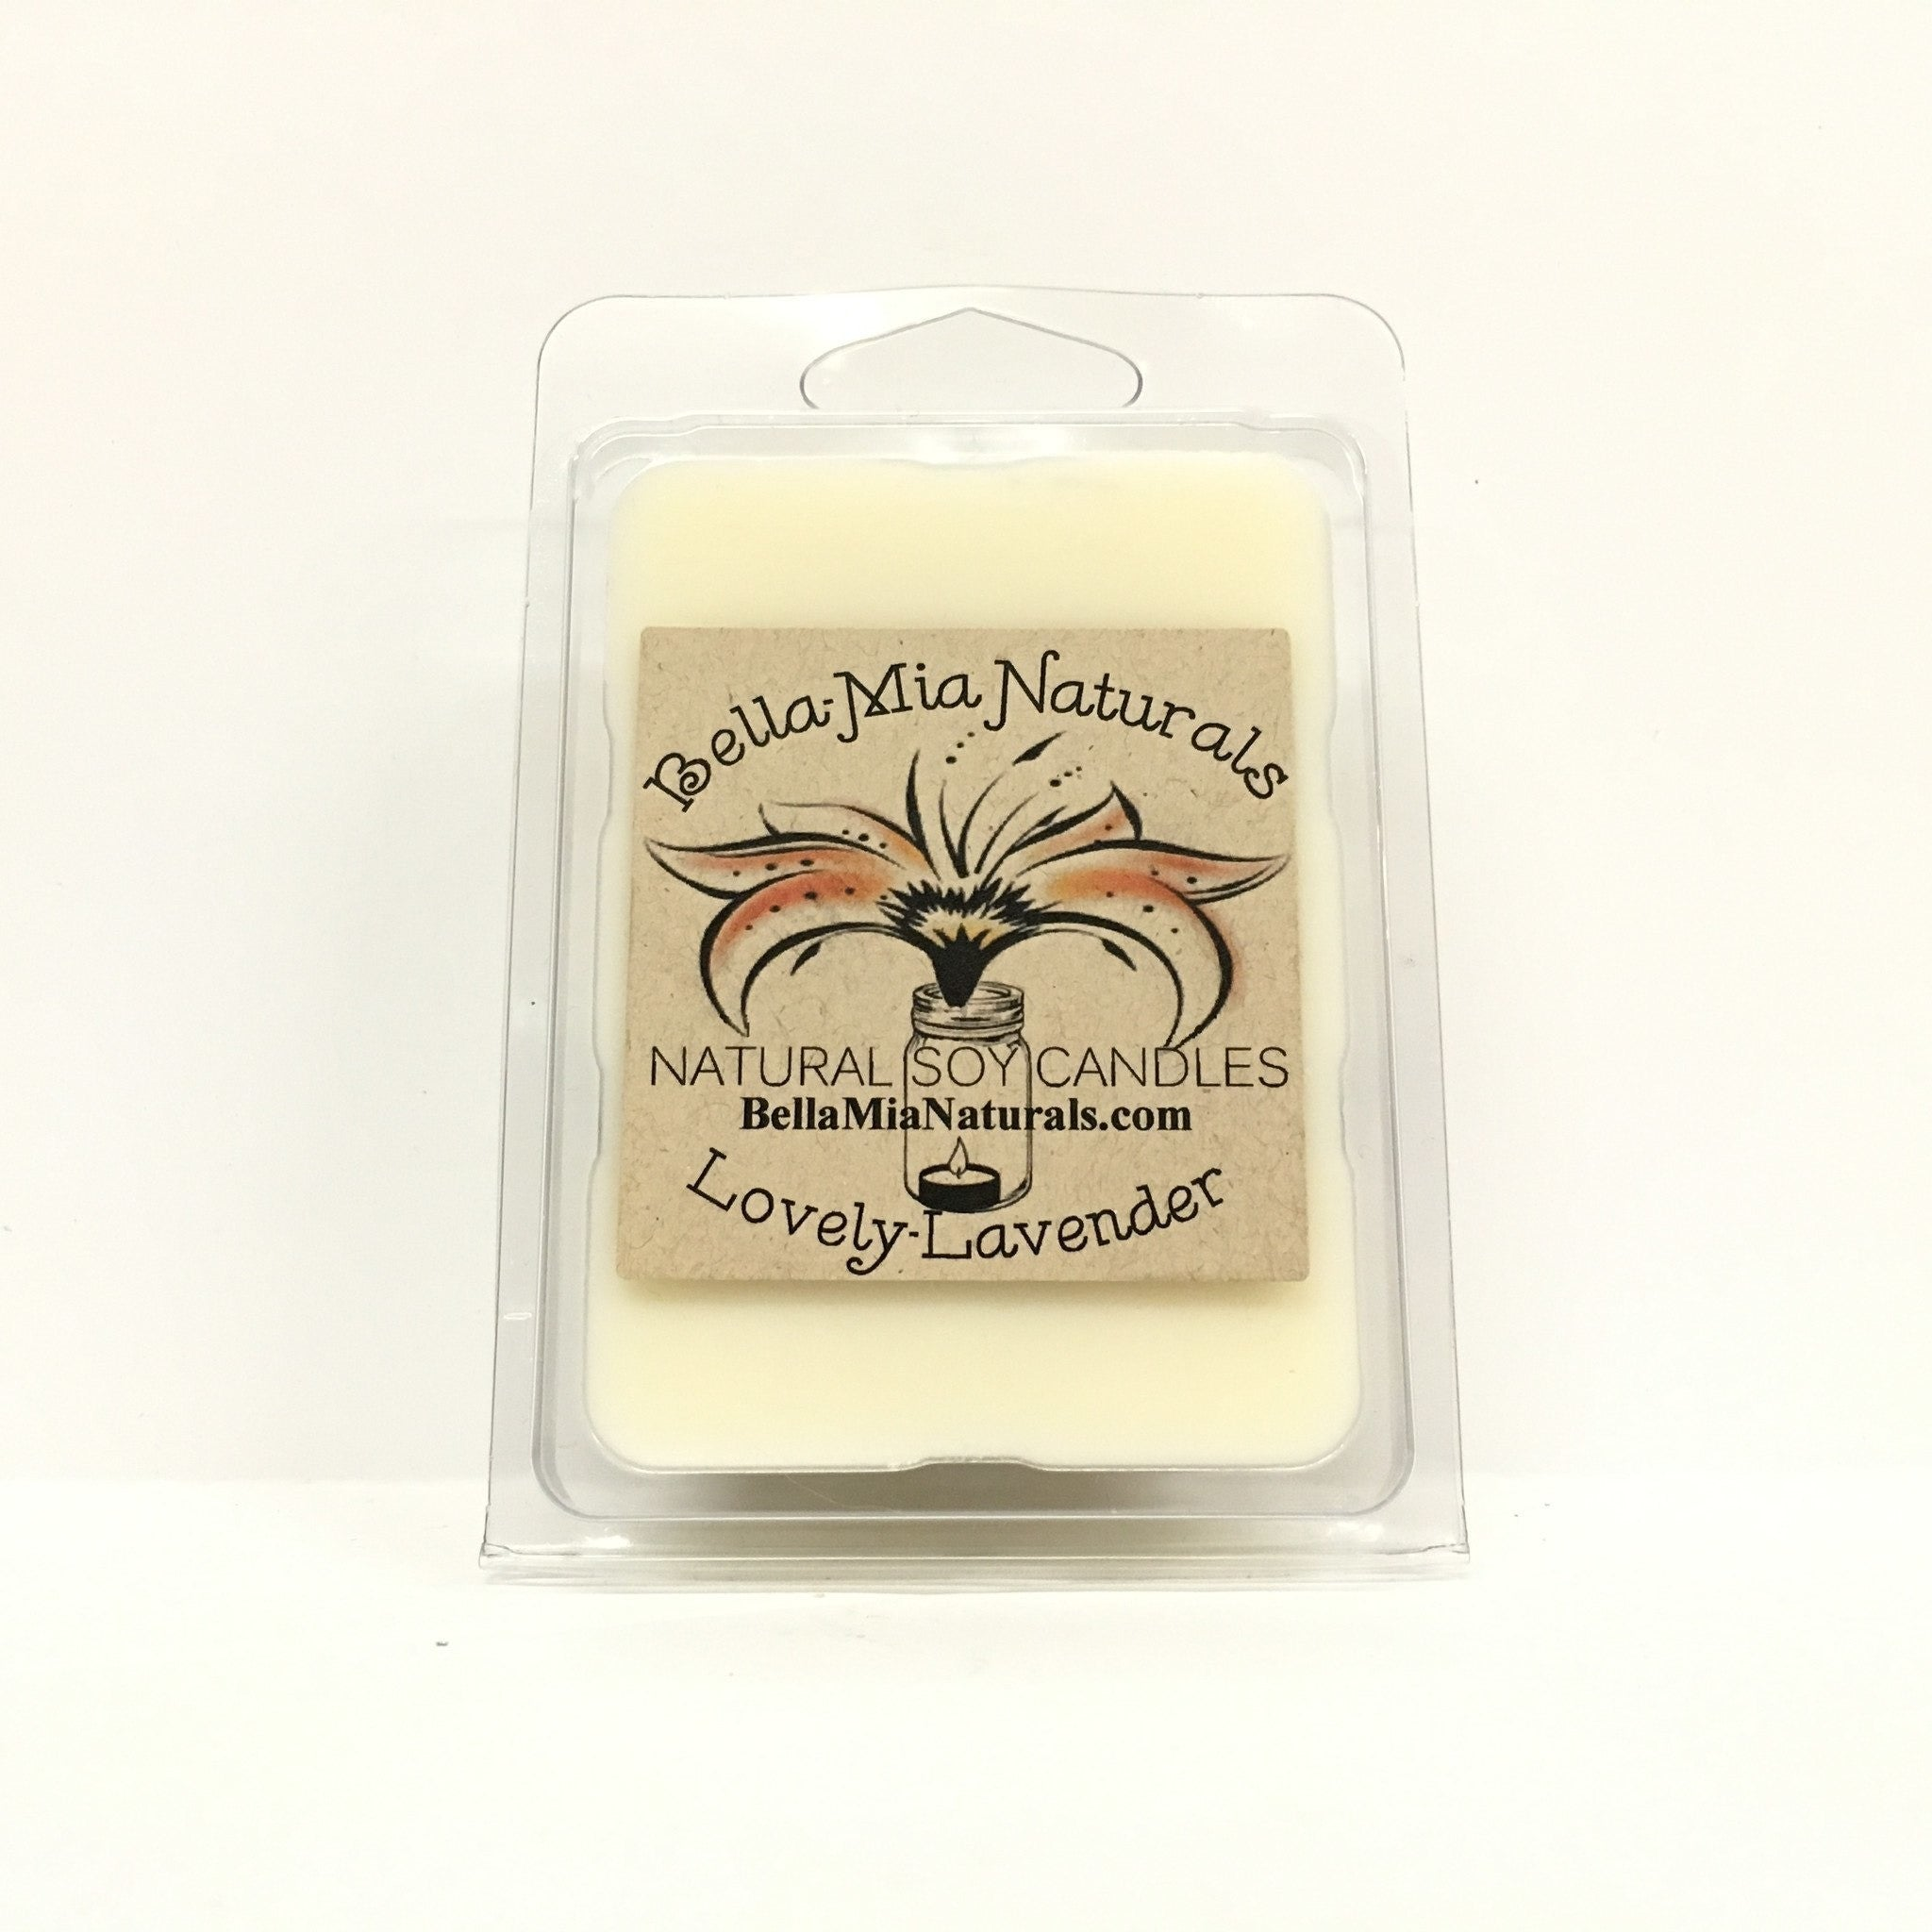 Lovely-Lavender Natural Hand Poured Soy Candles - Melt-6 Pack - Bella-Mia Naturals All Natural Soy Candles & Lip Balms - 5